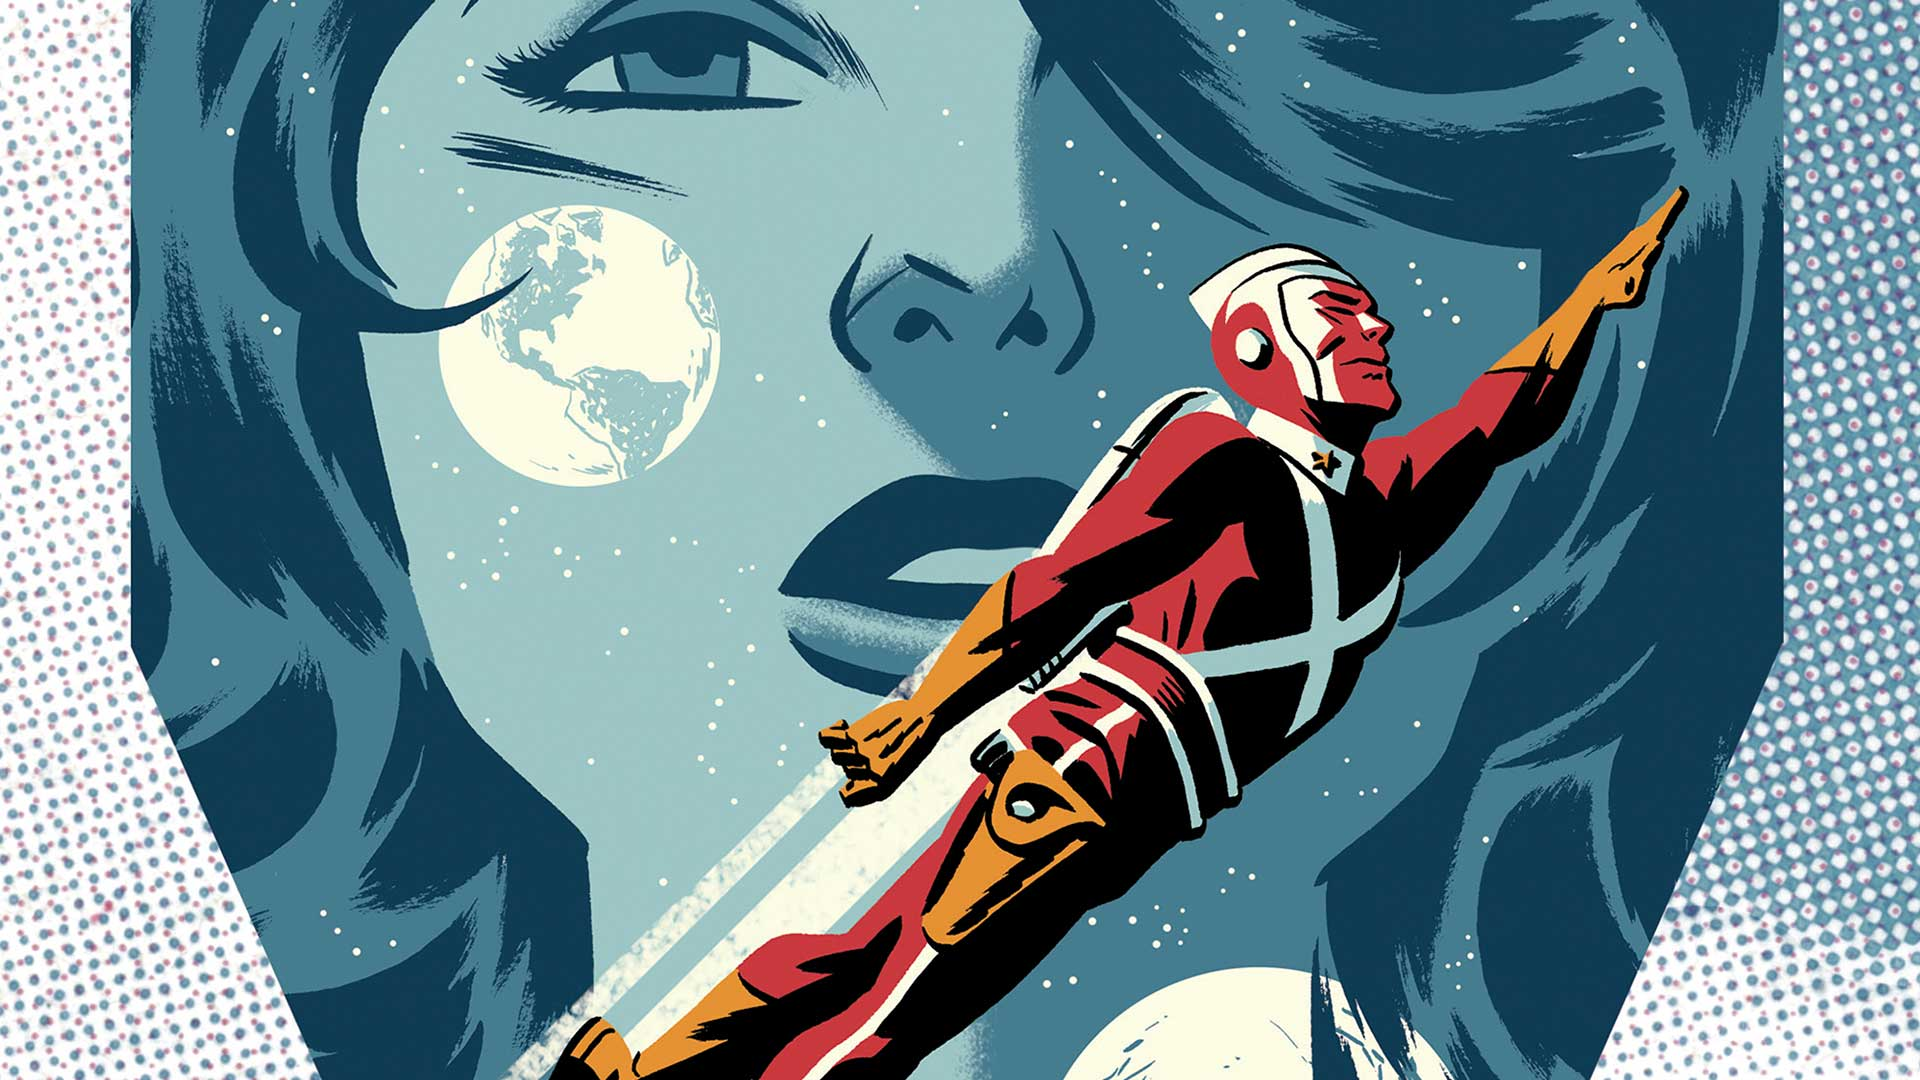 Adam Strange is Coming to the SYFY series Krypton